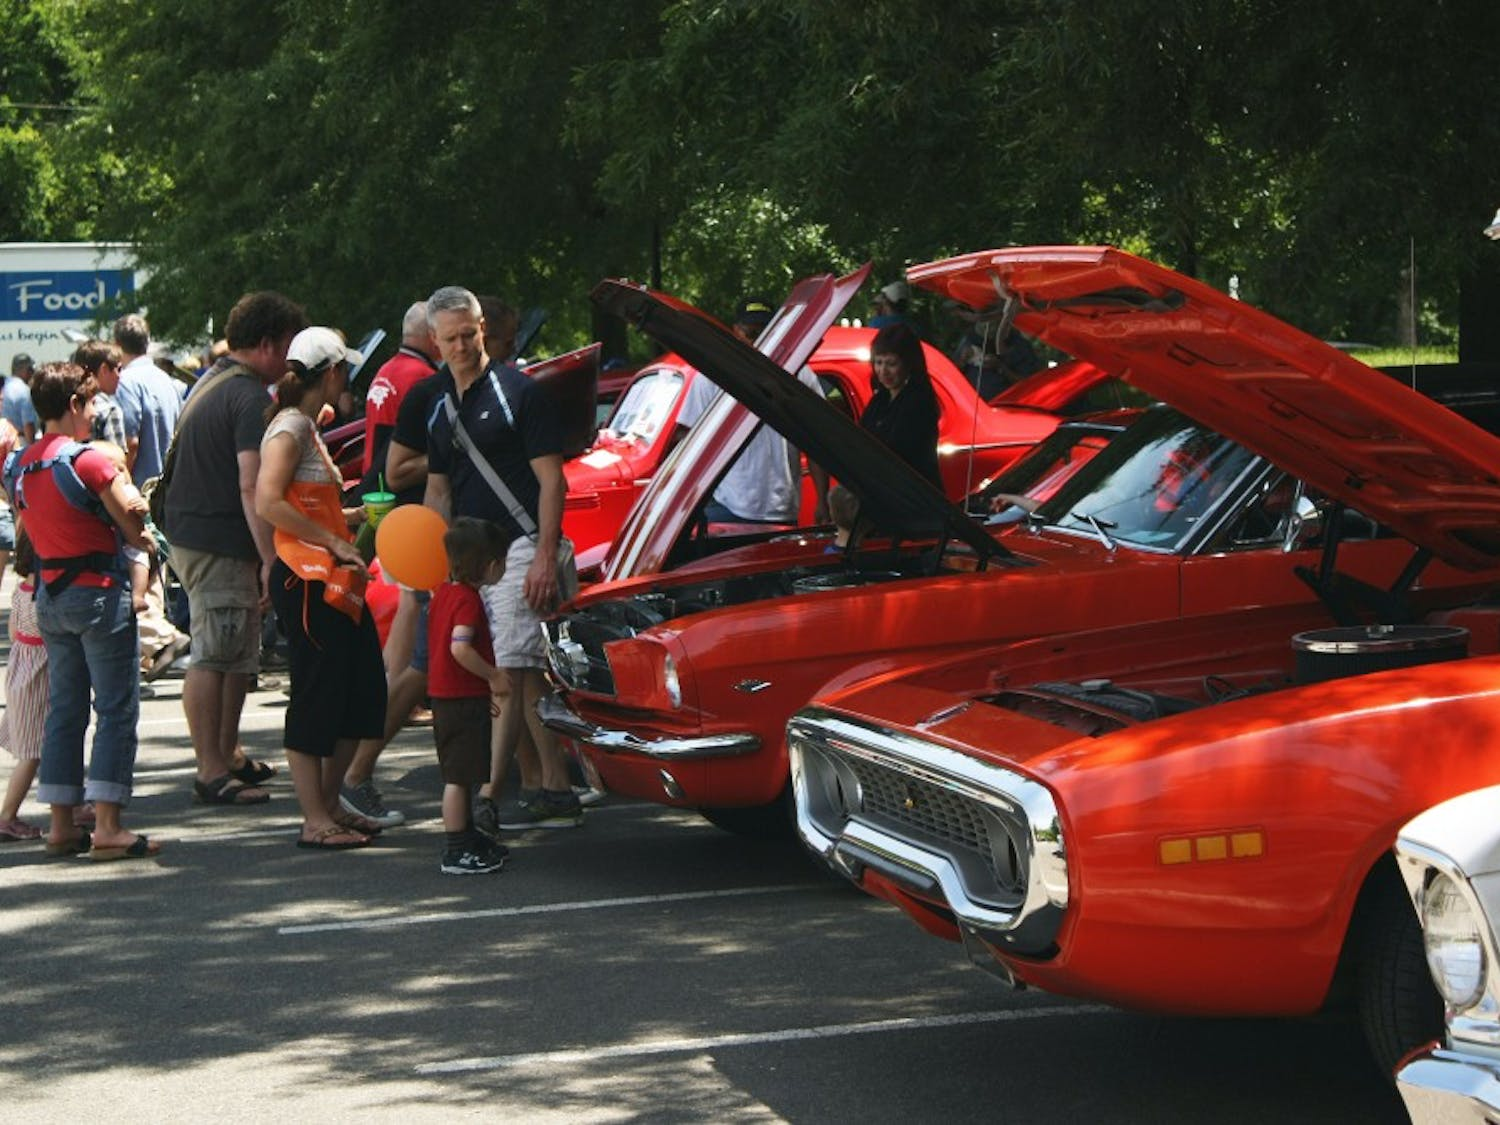 Attendees view the car show held by Triangle Thunder Cruisers on May 19. The car show started in 2007 and is the largest in the area.